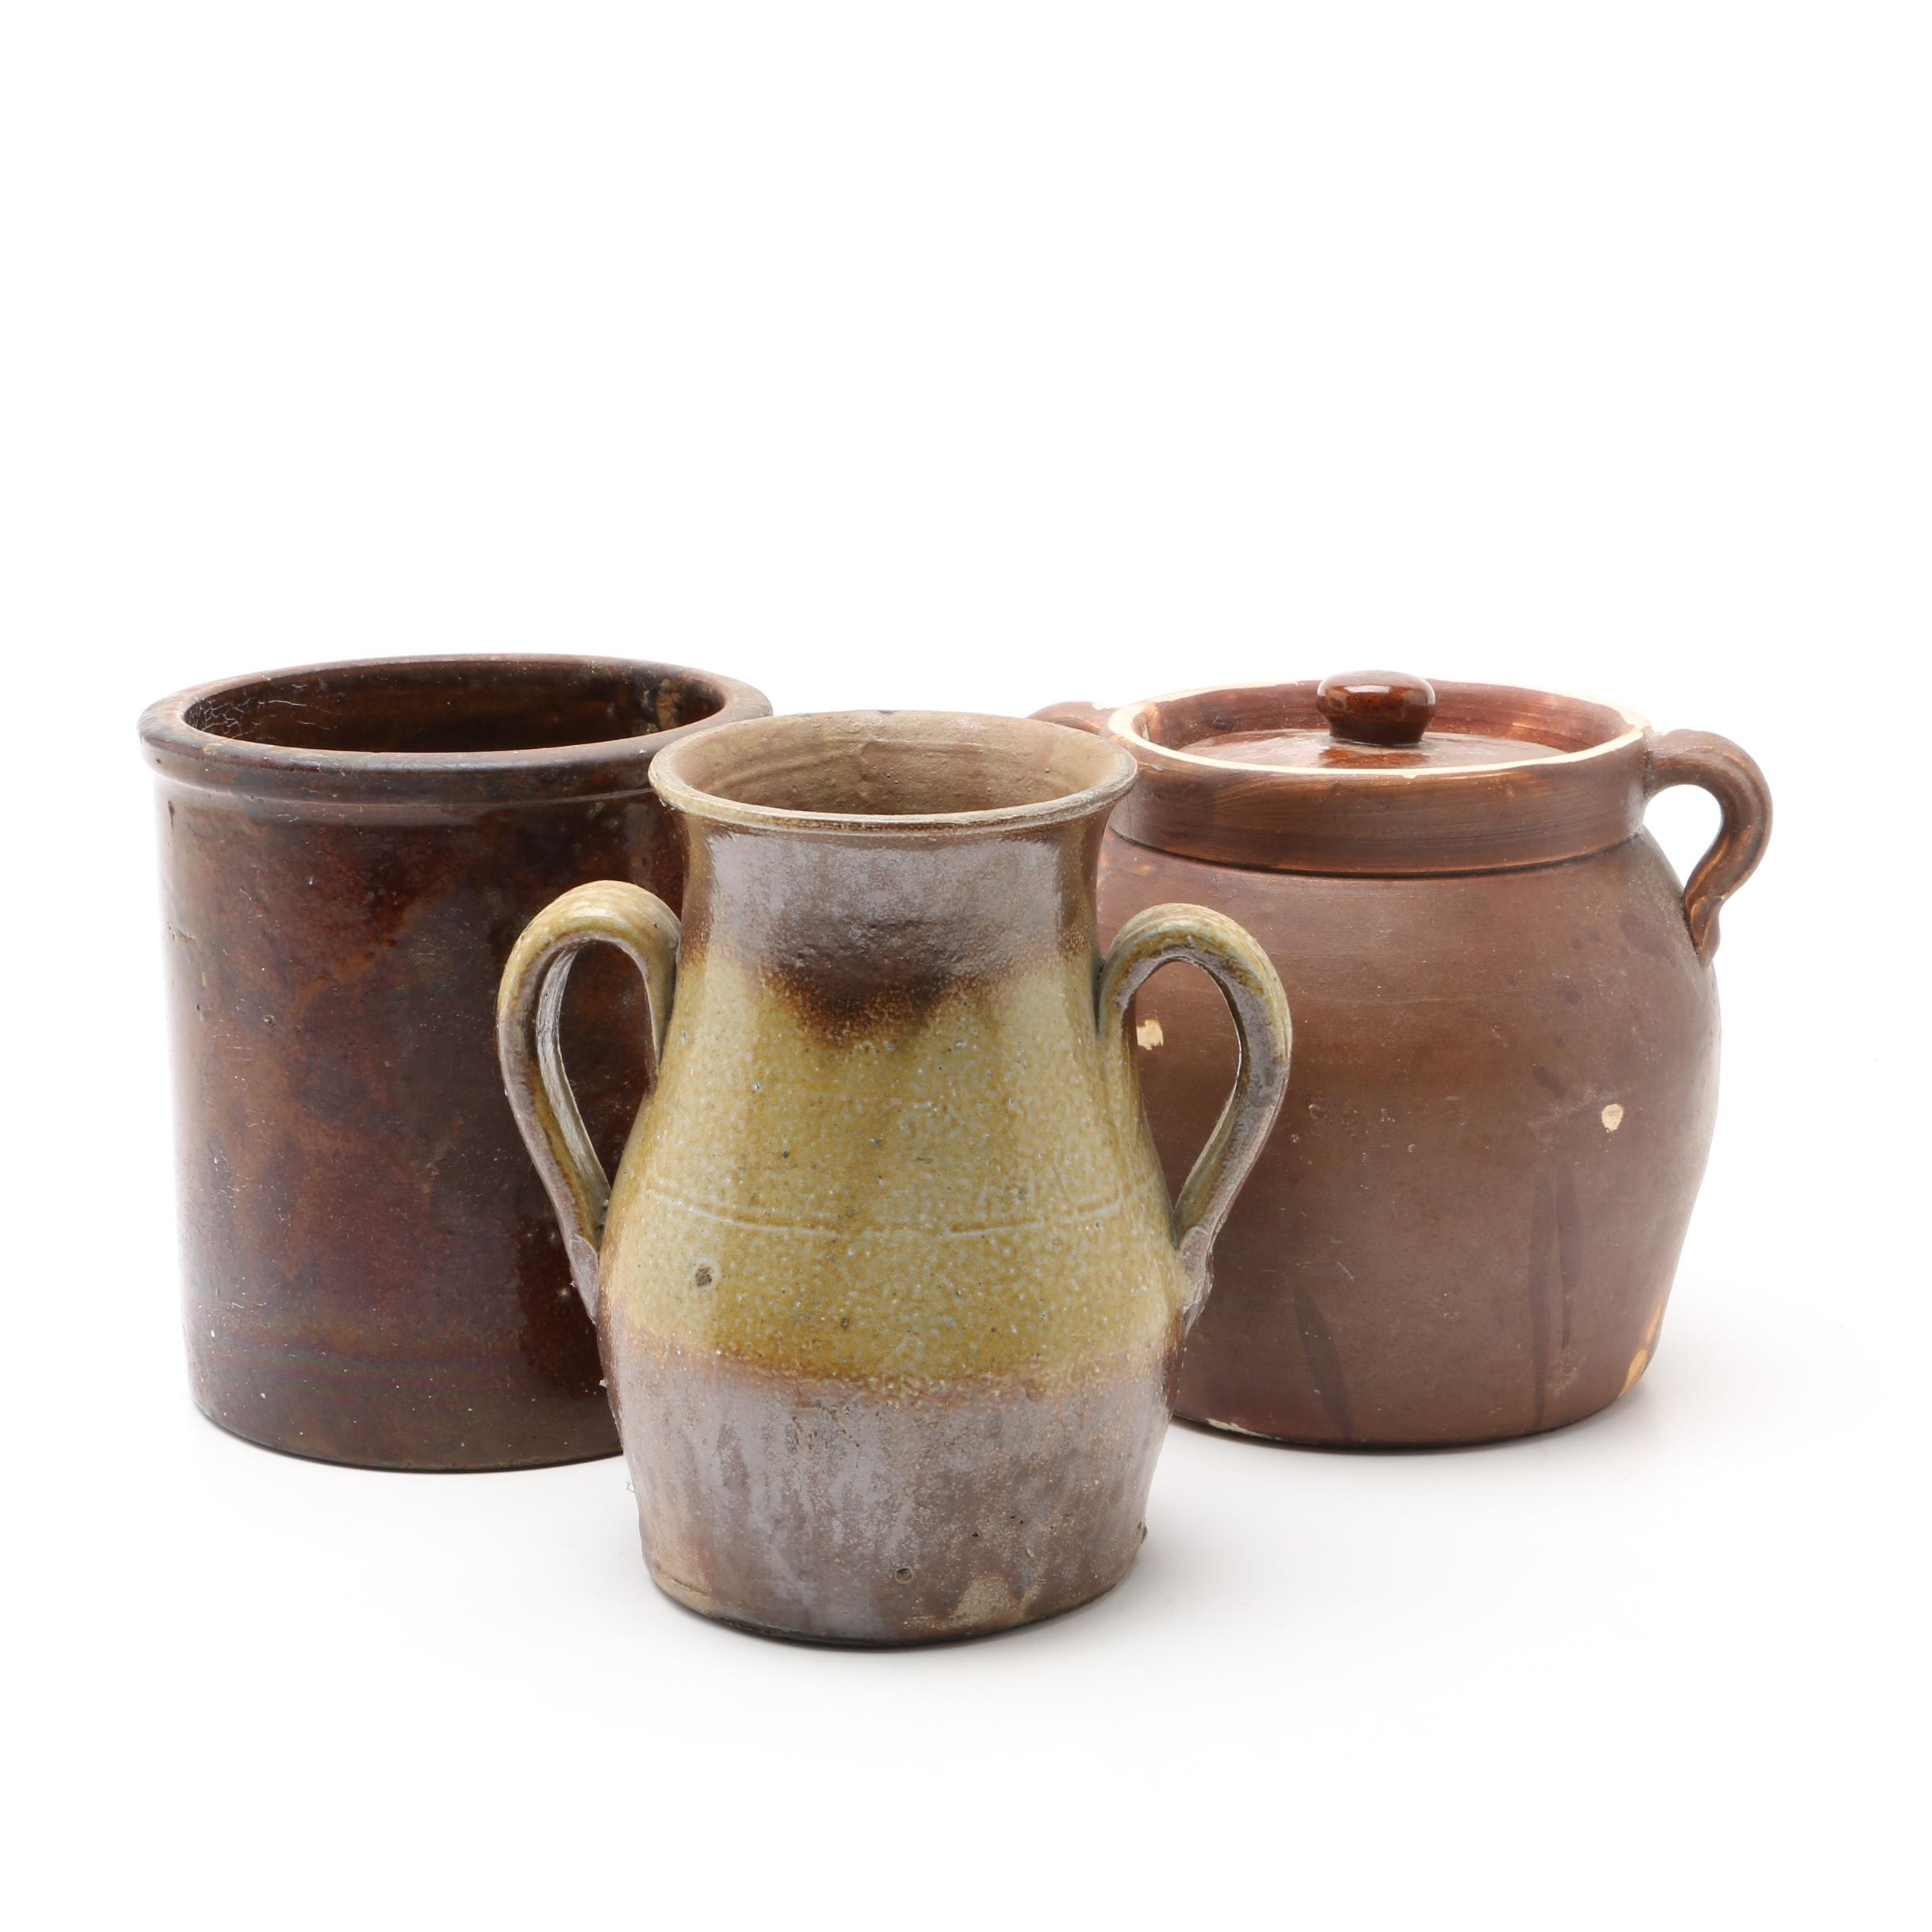 Three Vintage Pottery Vessels Including a Lidded Bean Pot